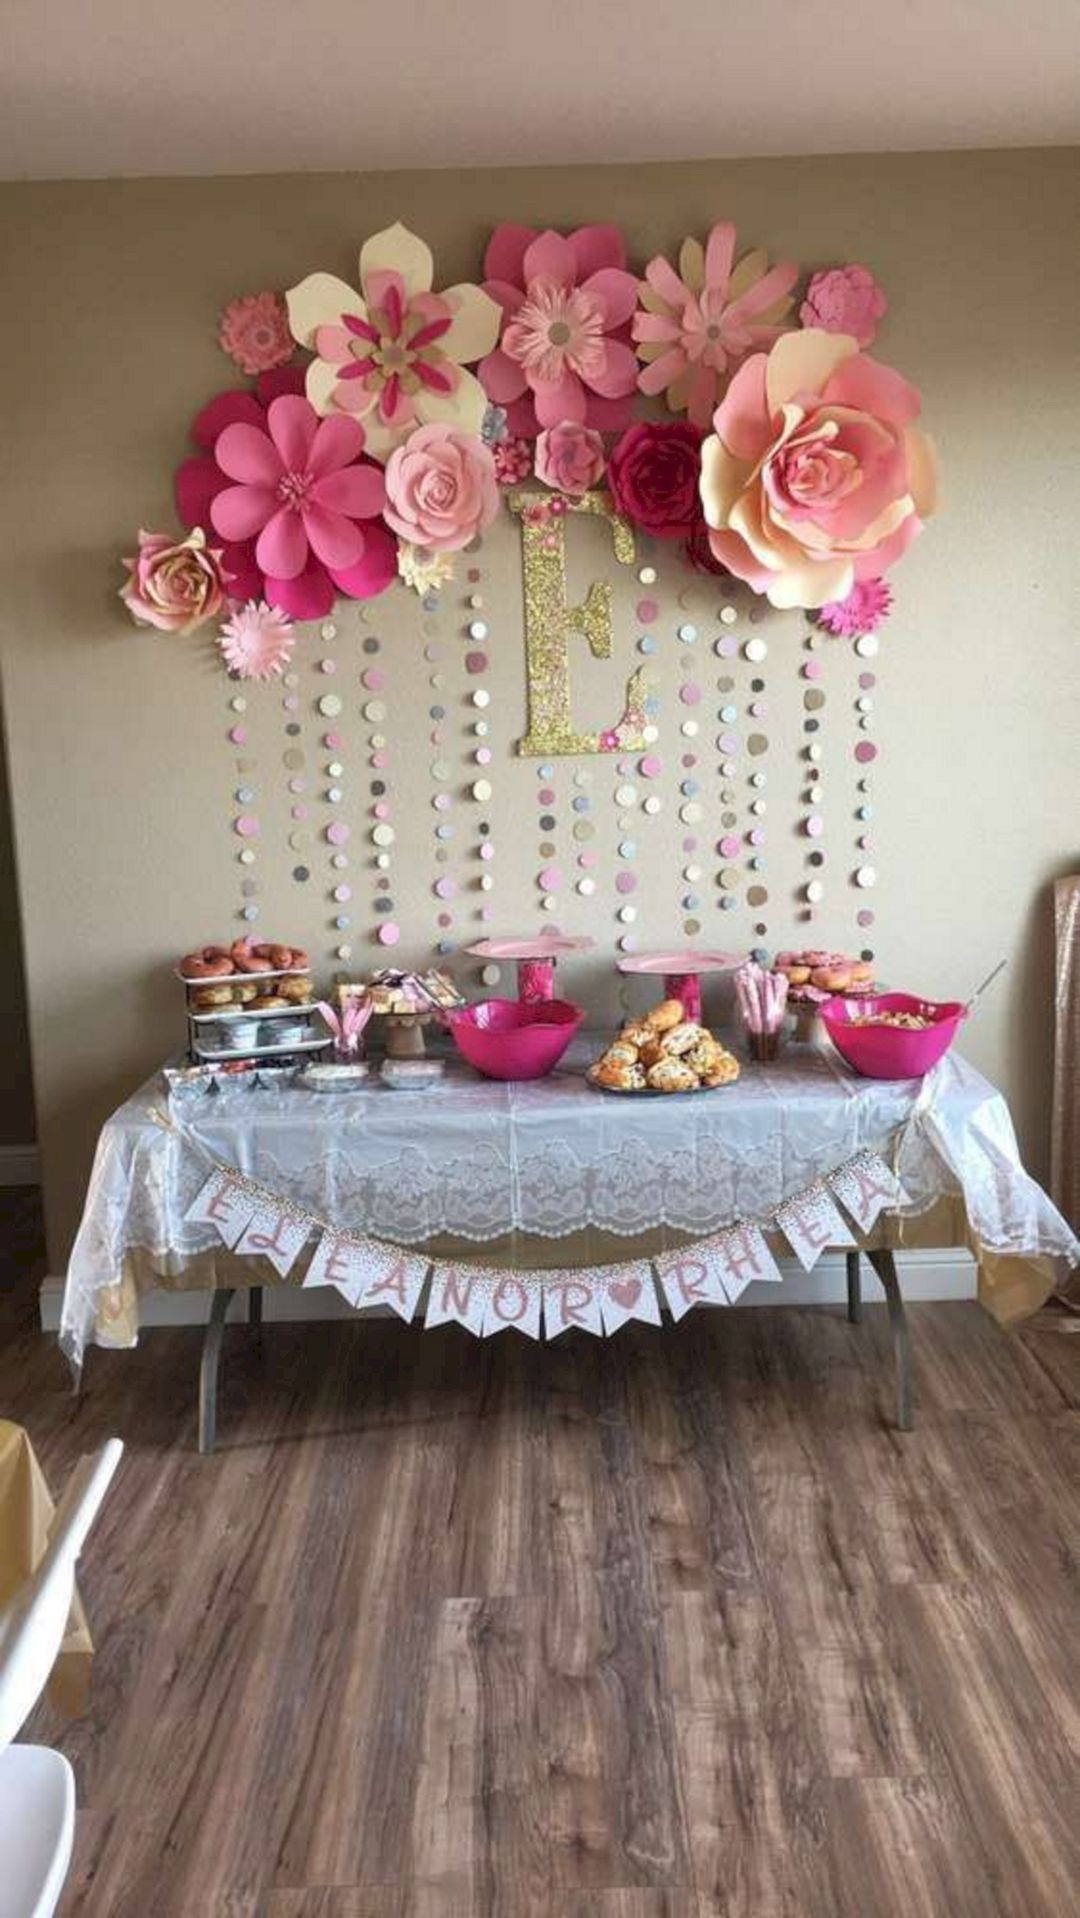 Discover The Most Stylish Decorations For The Baby Shower Celebration